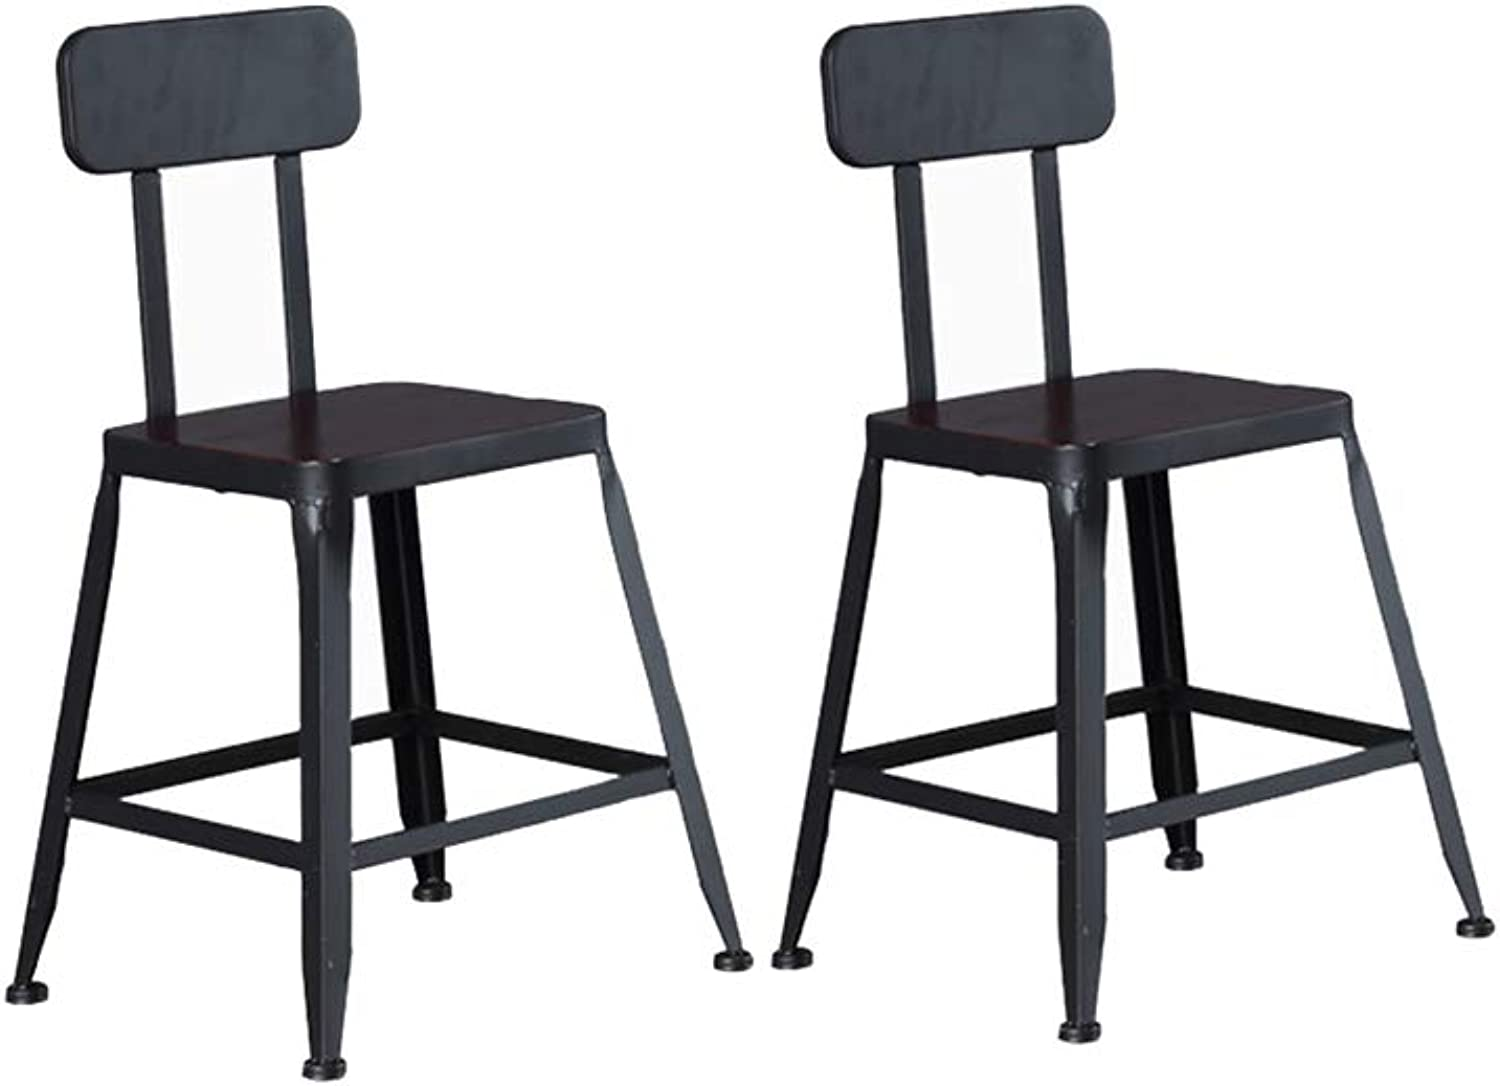 XJBD-Barstools 2 Pcs Bar Chair Kitchen Pub Stools Counter Kitchen Breakfast Dining Chair Black Metal Frame Industrial Retro Safety Backrest (Size   45cm)